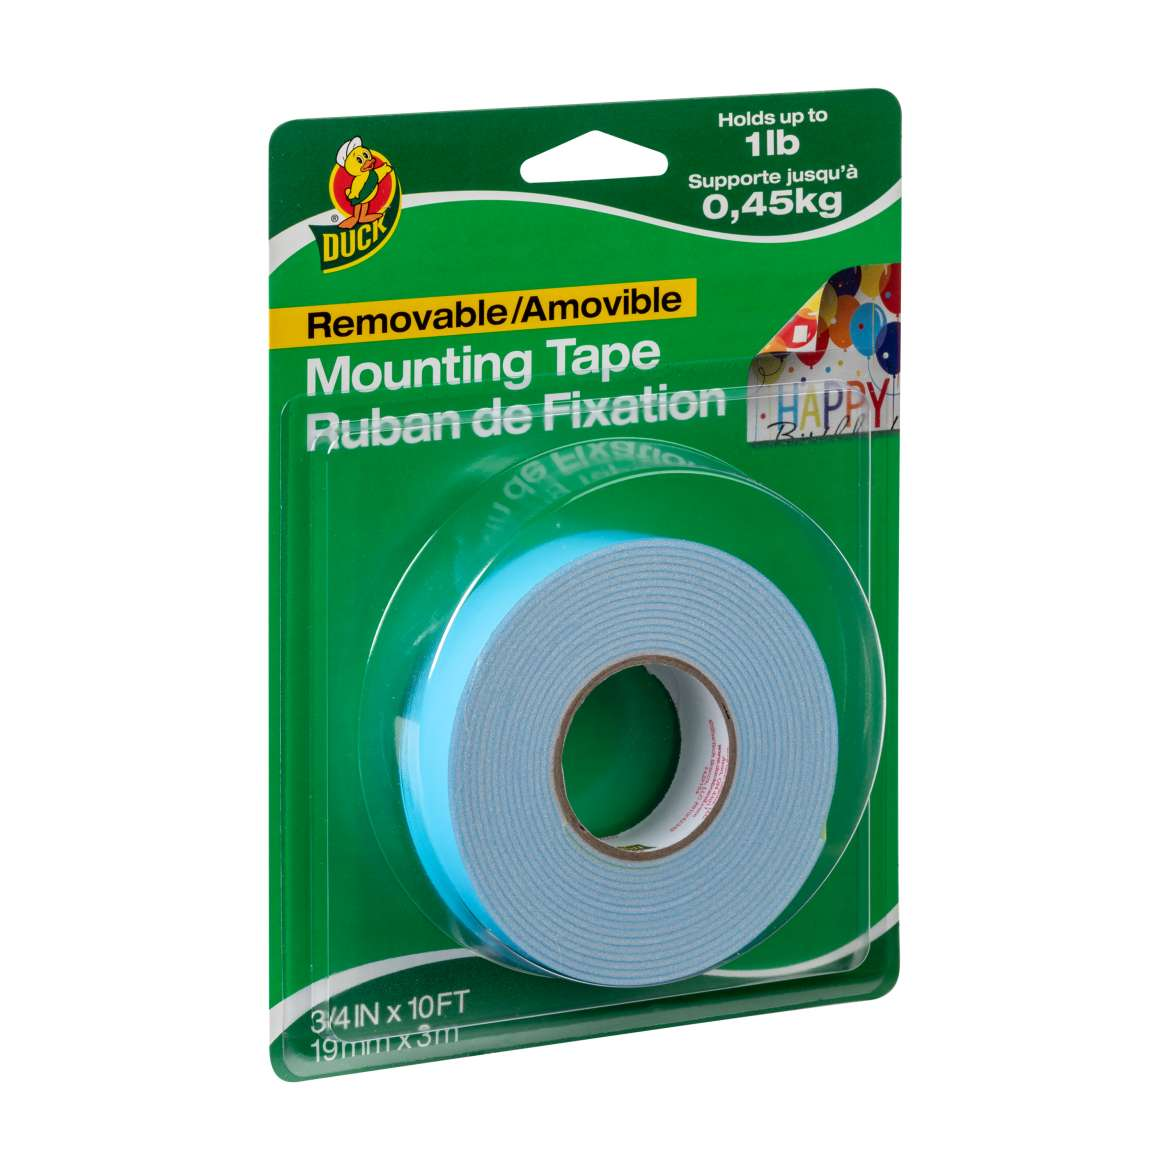 Removable Mounting Tape Image